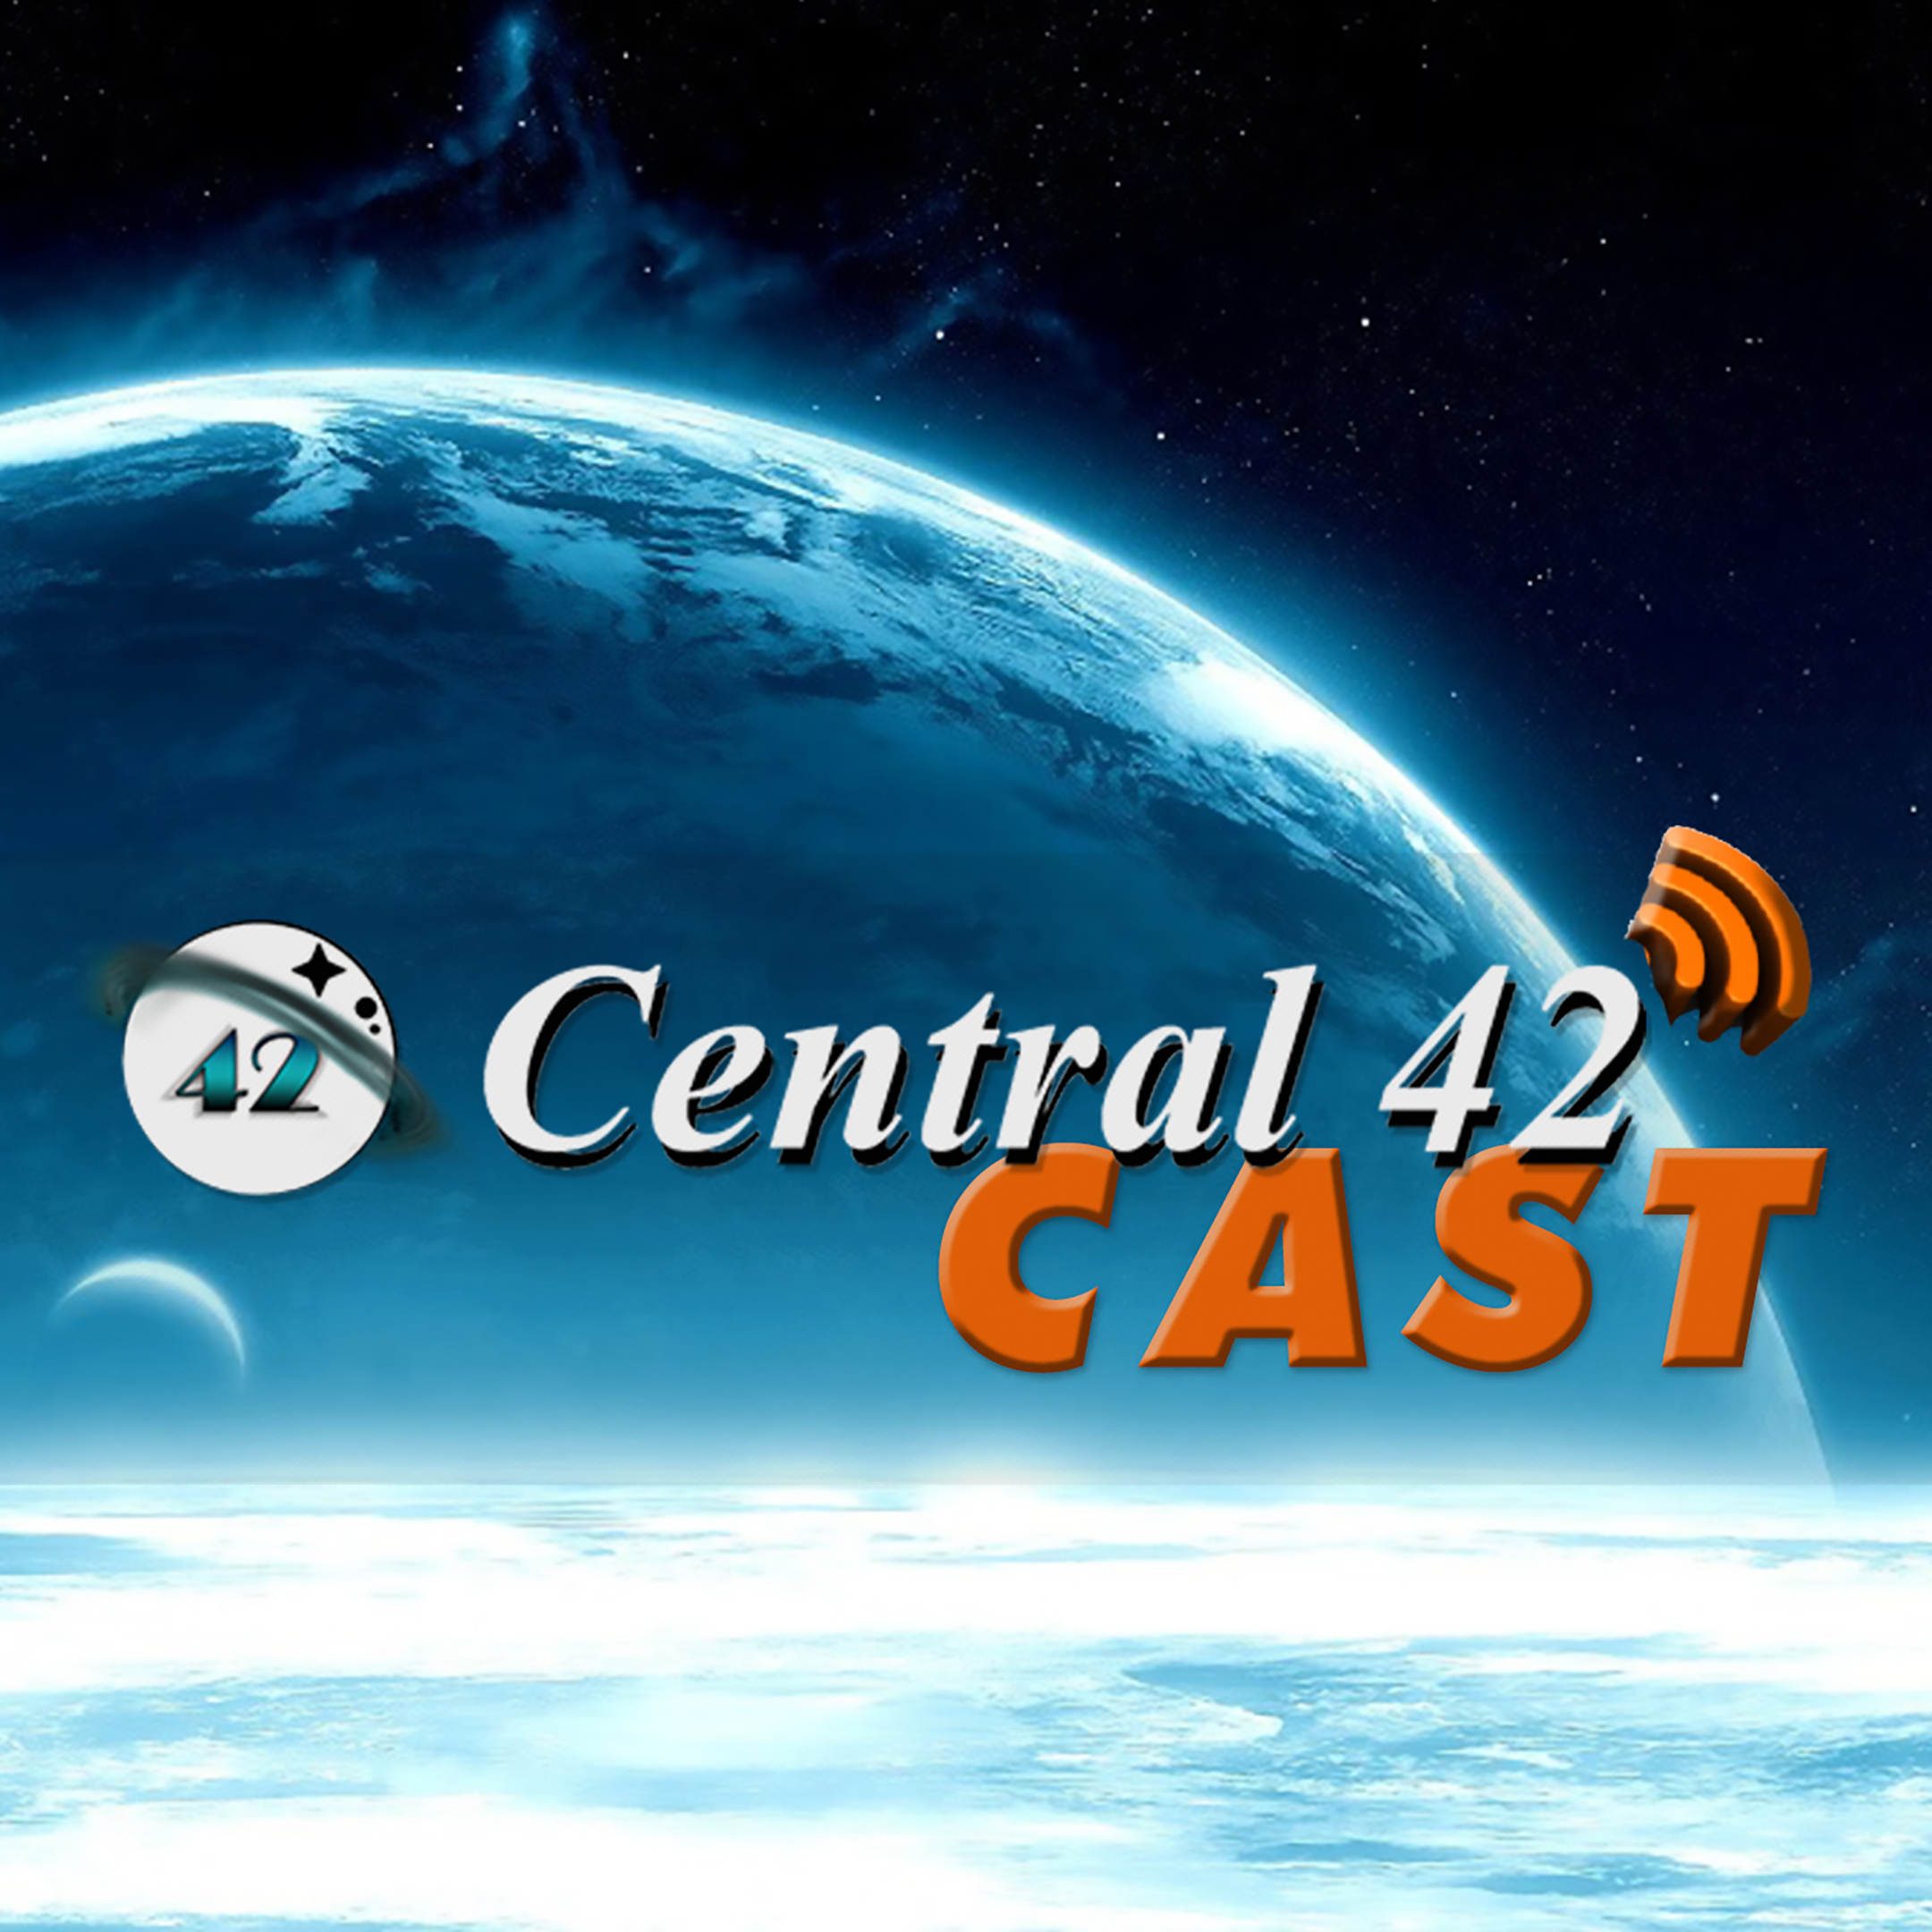 Central 42 CAST